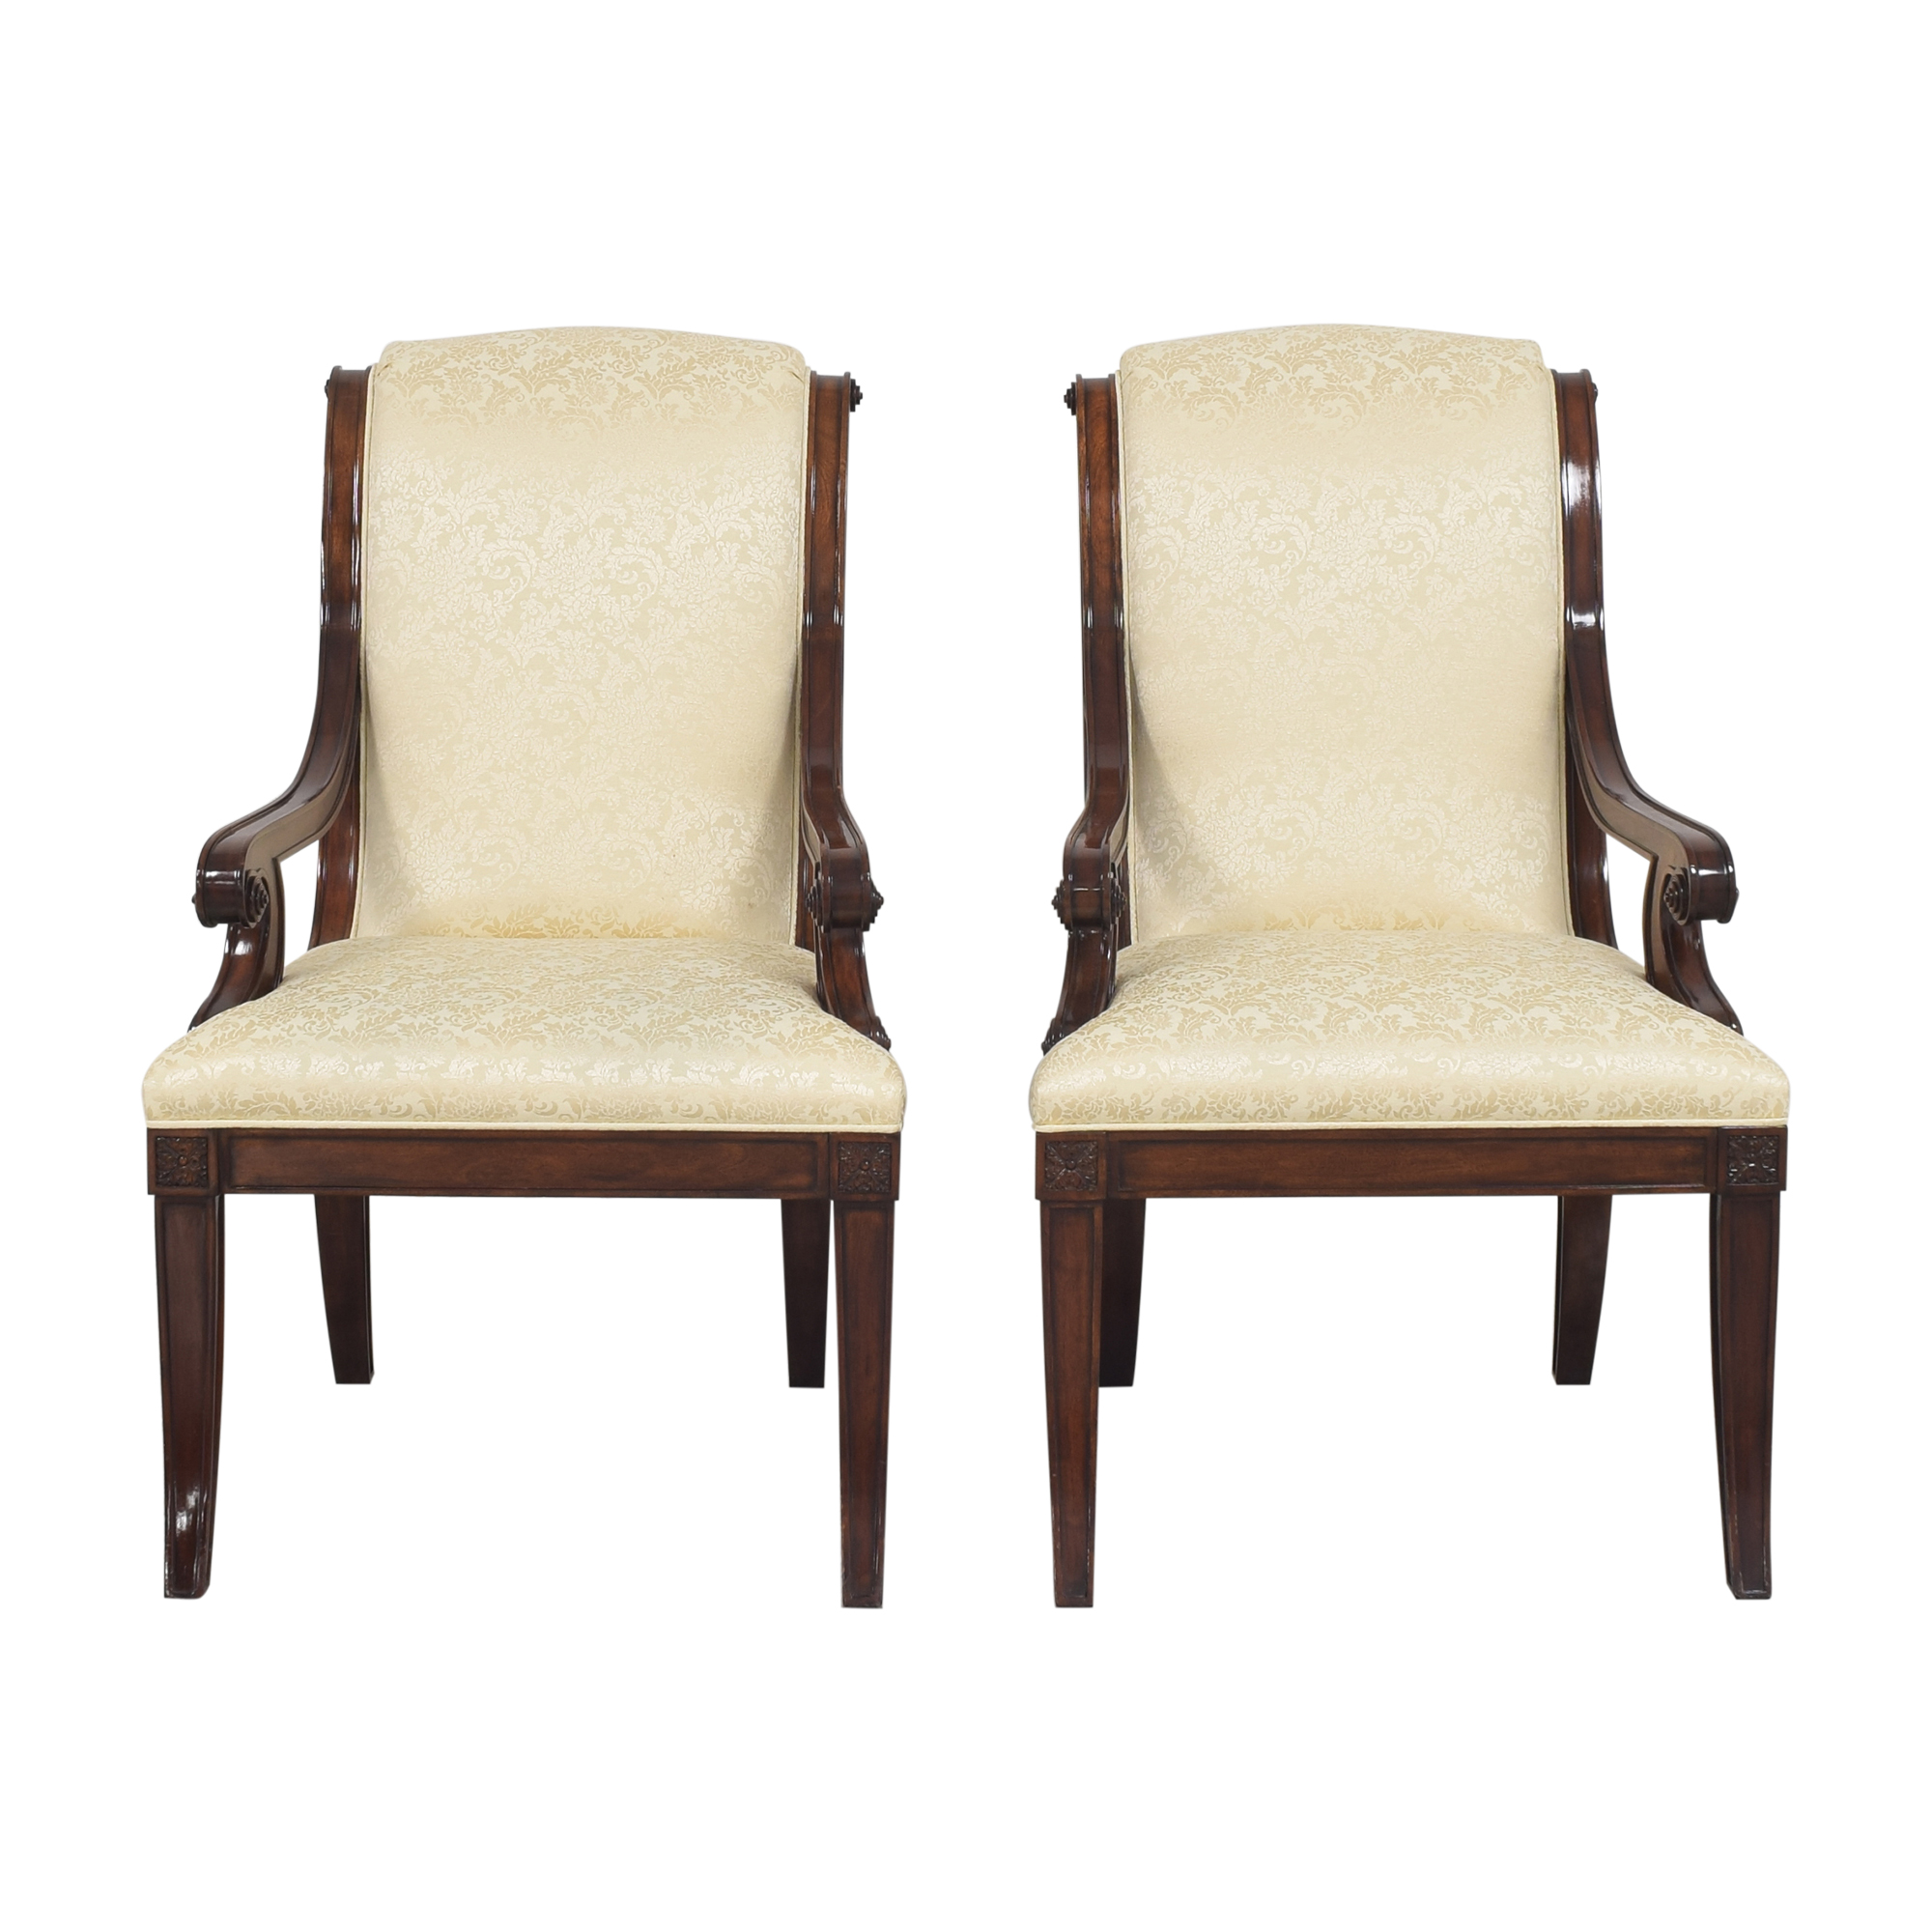 Theodore Alexander Theodore Alexander Gabrielle Upholstered Arm Chairs used